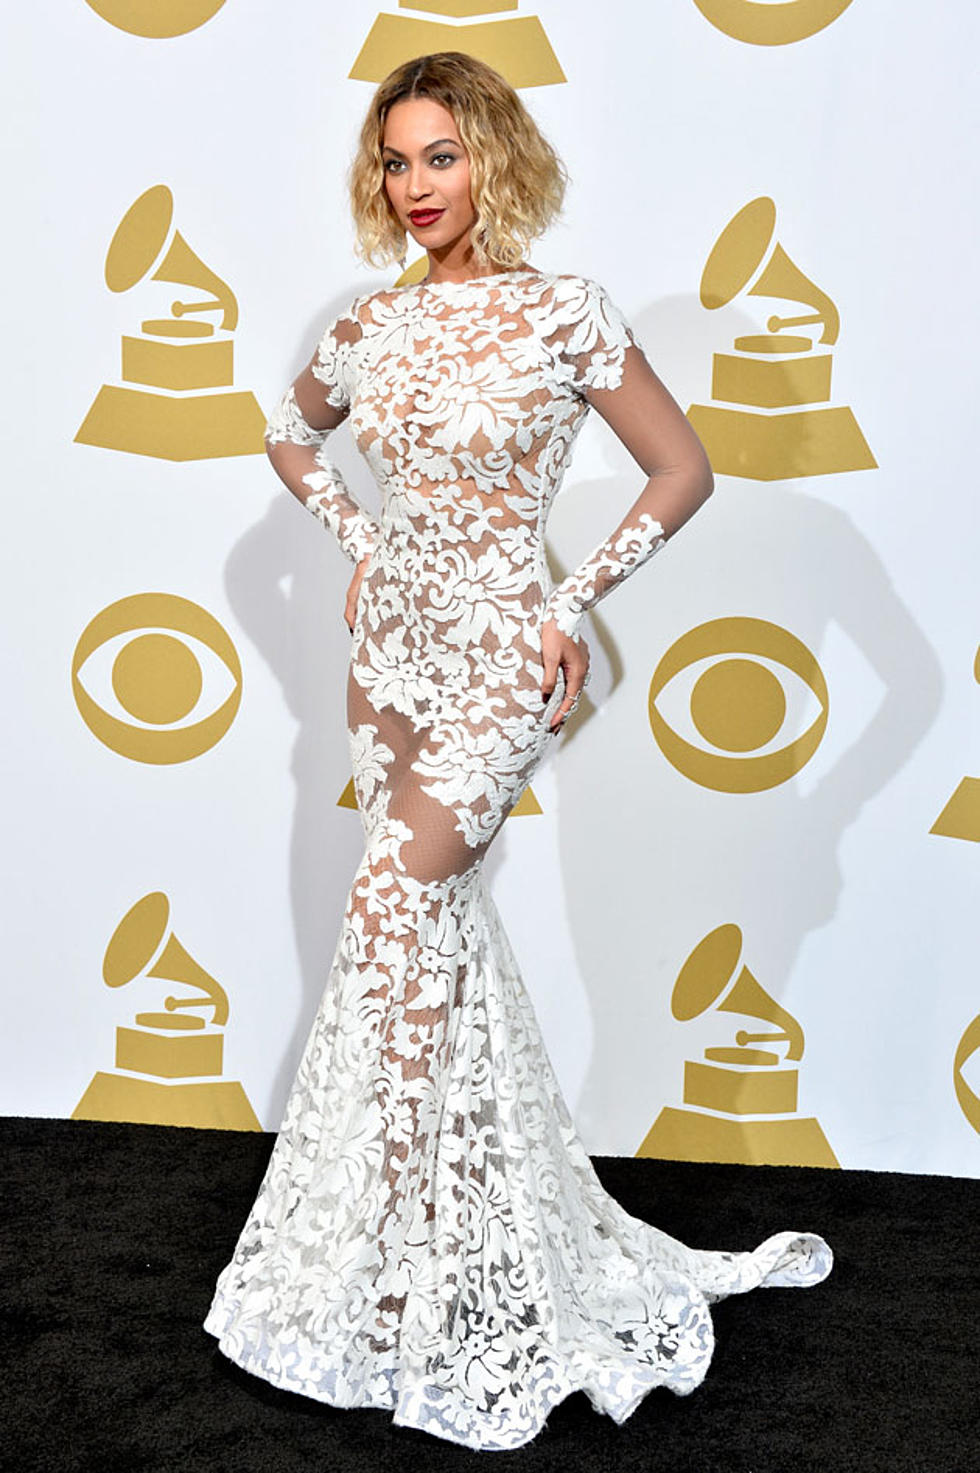 Beyonce Wows In White Lace Dress On The 2017 Grammys Red Carpet Photos